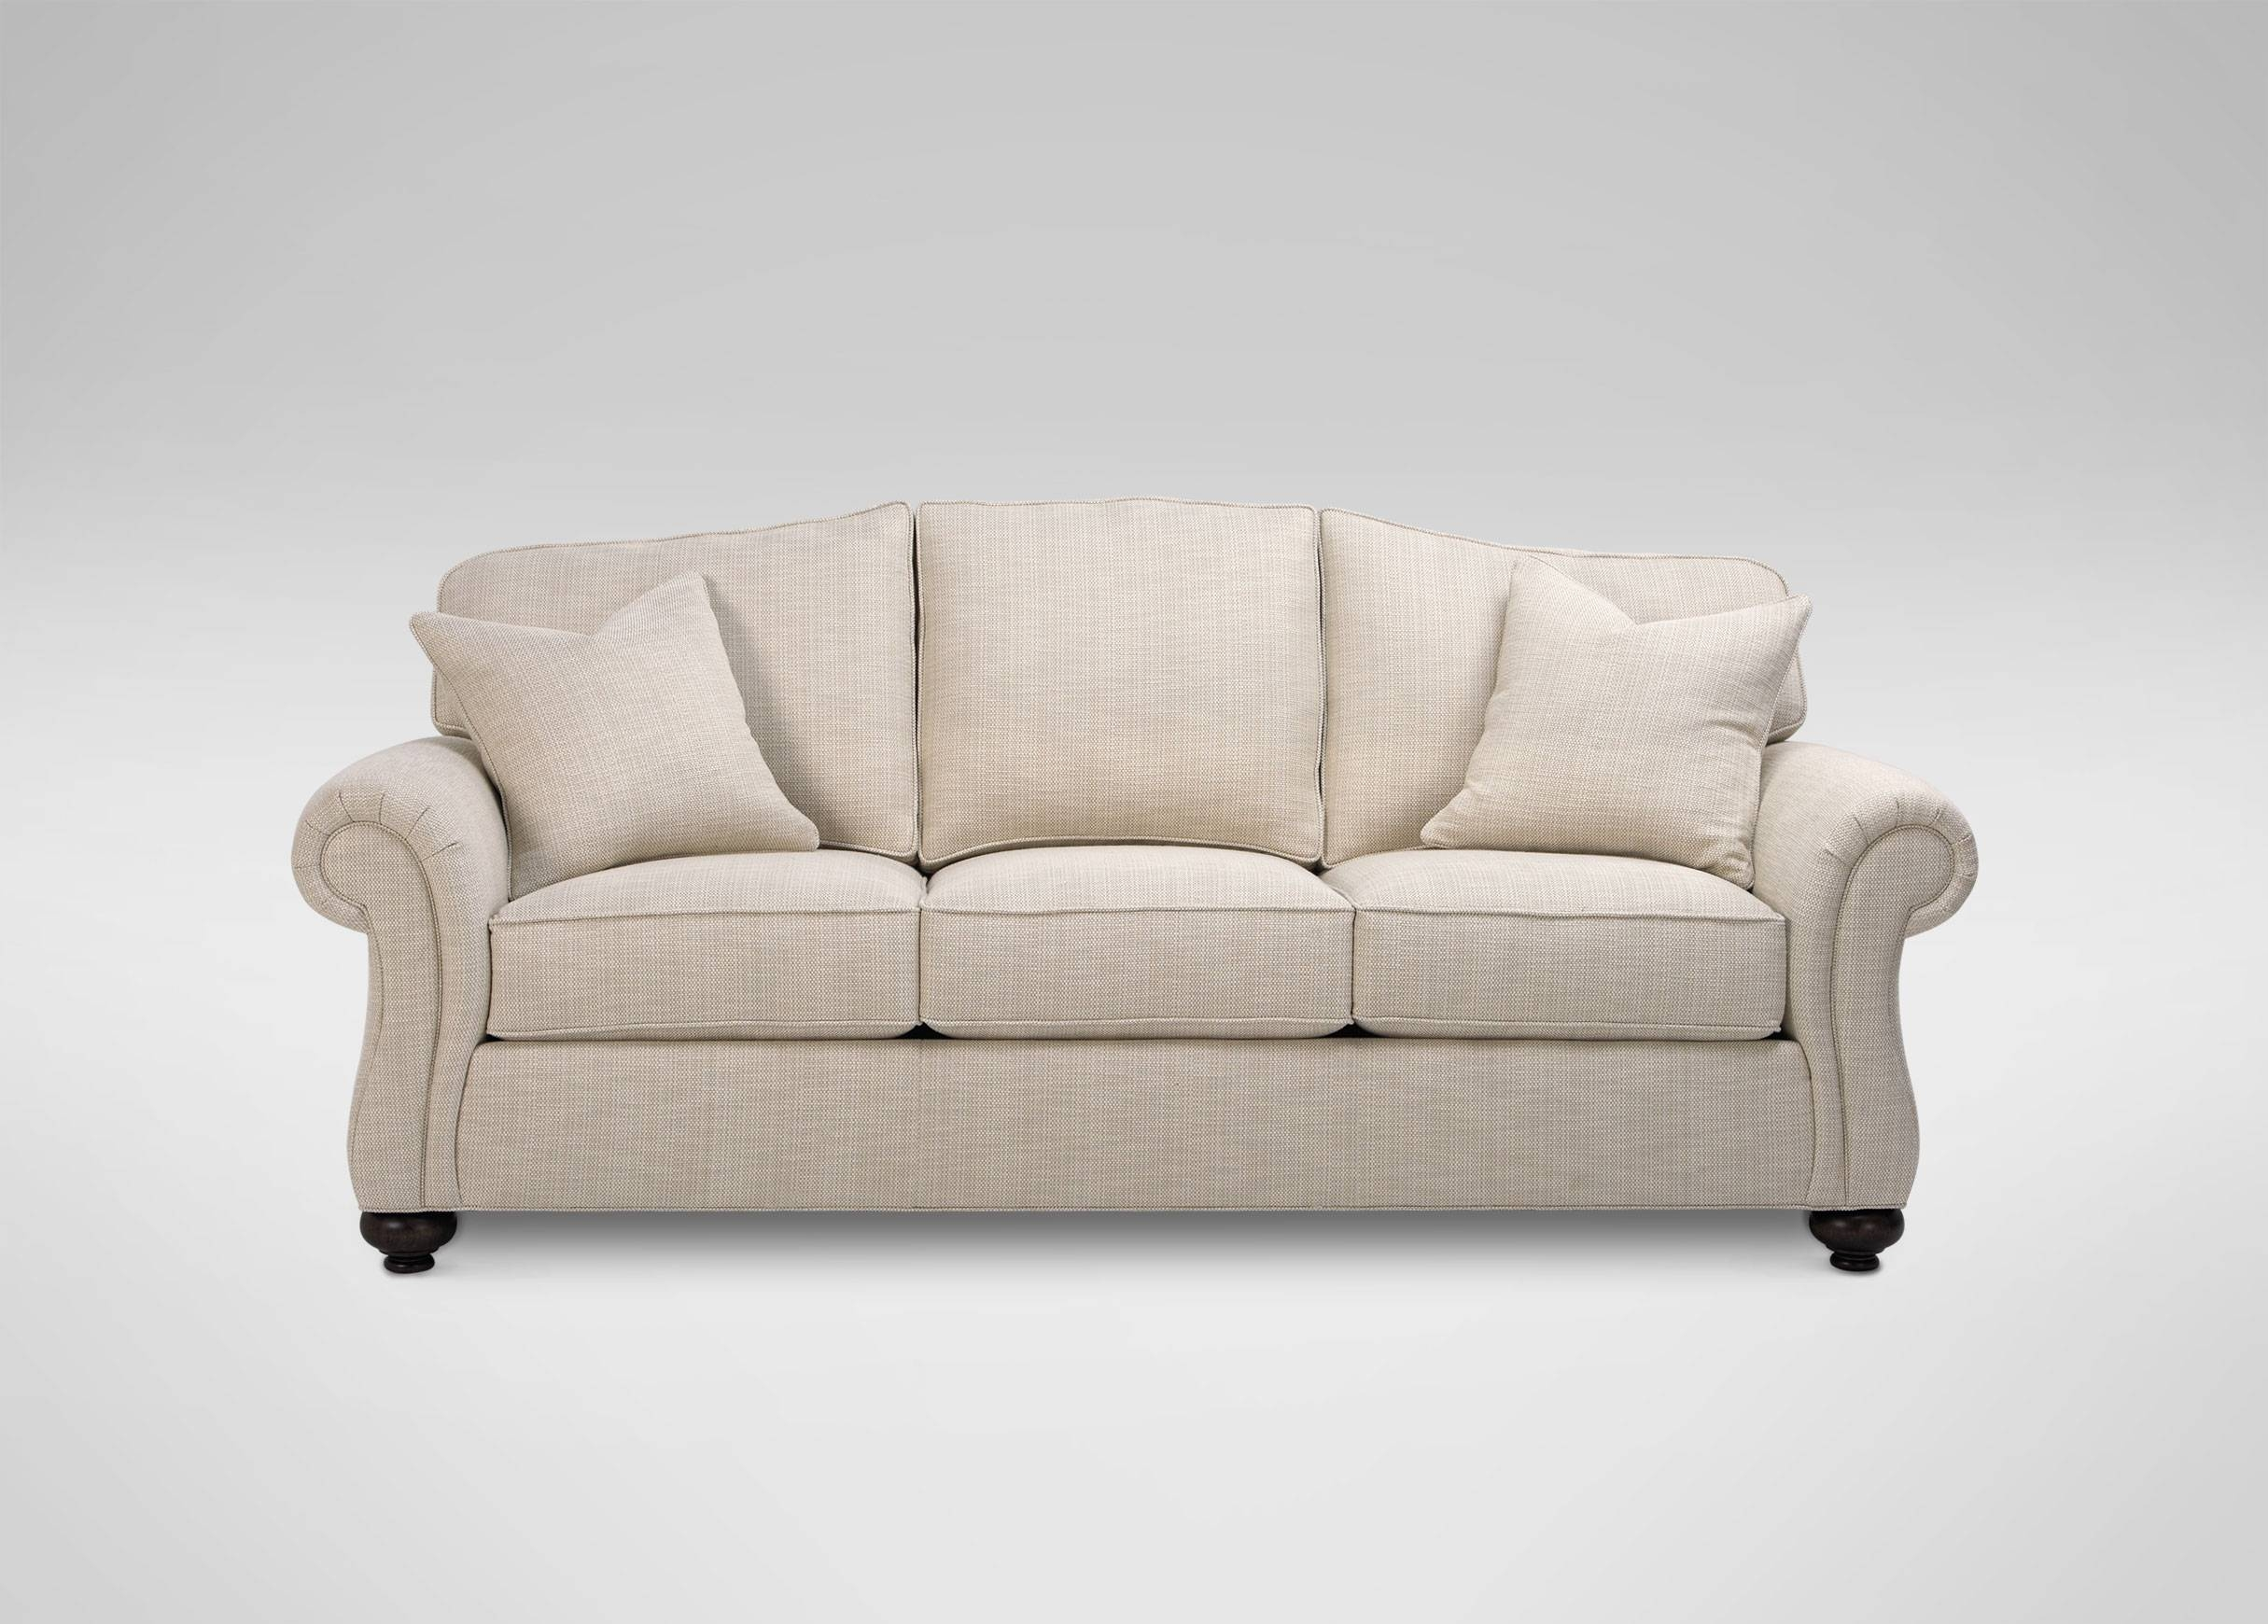 Whitney Sofa | Sofas & Loveseats in Ethan Allen Whitney Sofas (Image 15 of 15)